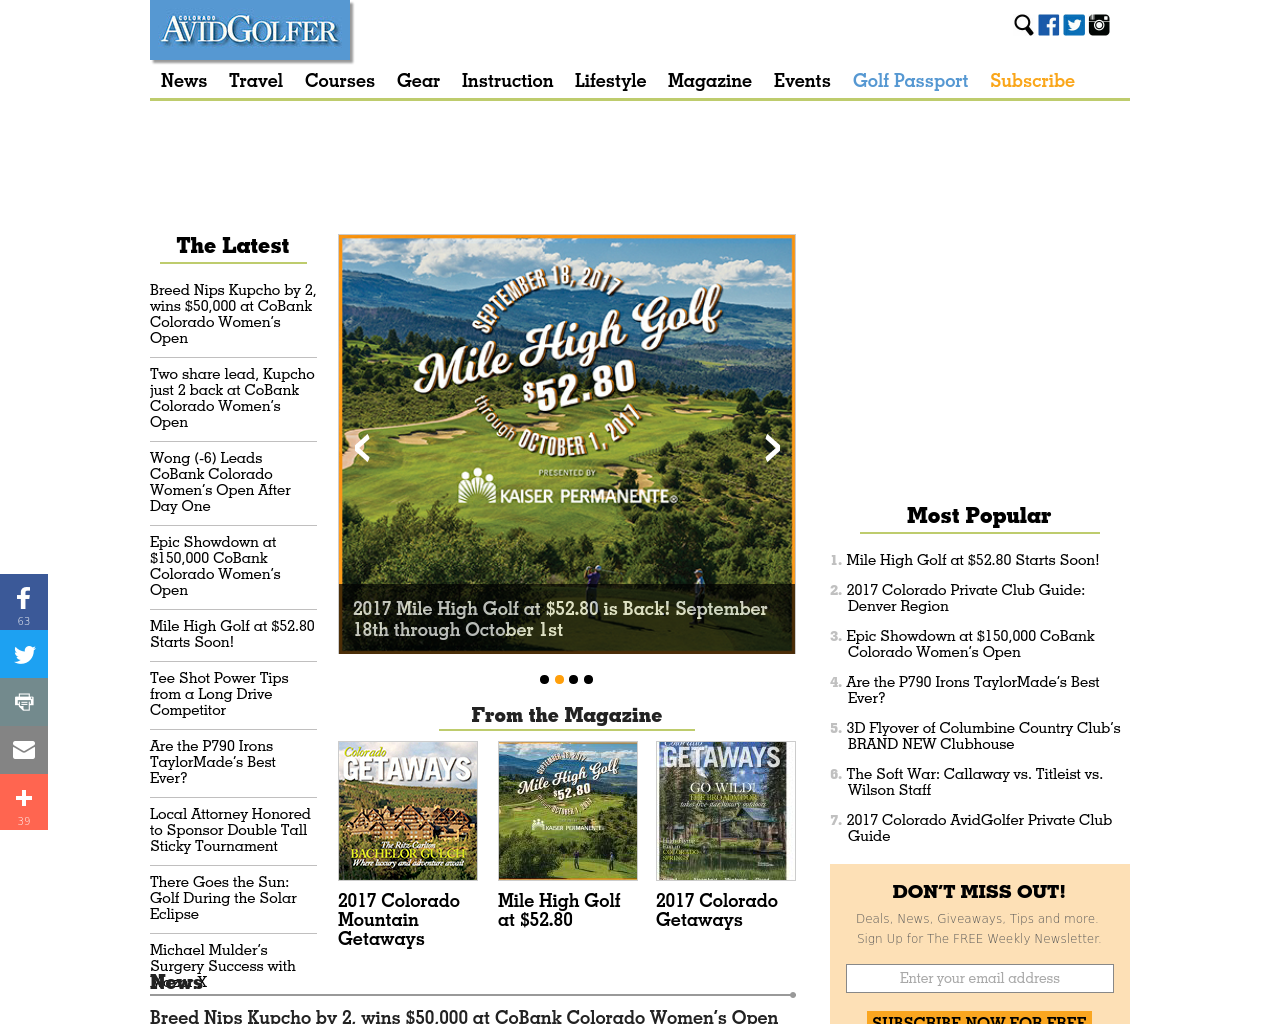 Colorado-Avid-Golfer-Advertising-Reviews-Pricing